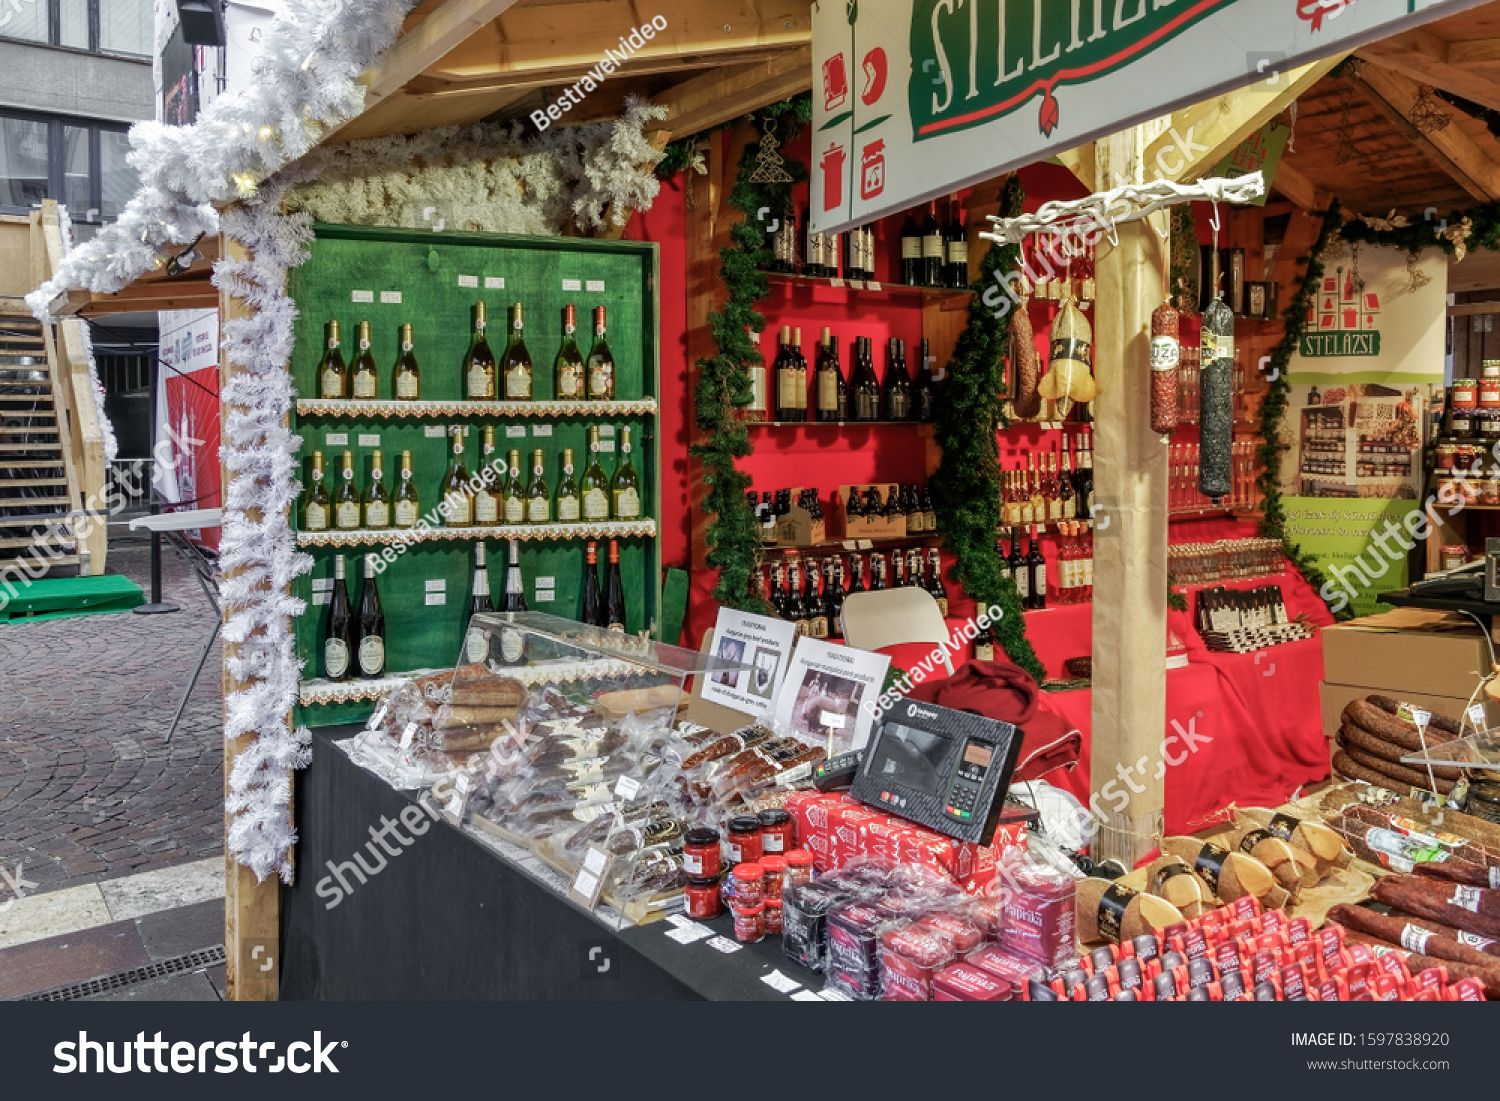 Budapest Hungary December 09 2019 Christmas Market With Food Drinks Stand Festive Decorations Along In 2020 Christmas Stock Photos Food Stand Design Food Stands